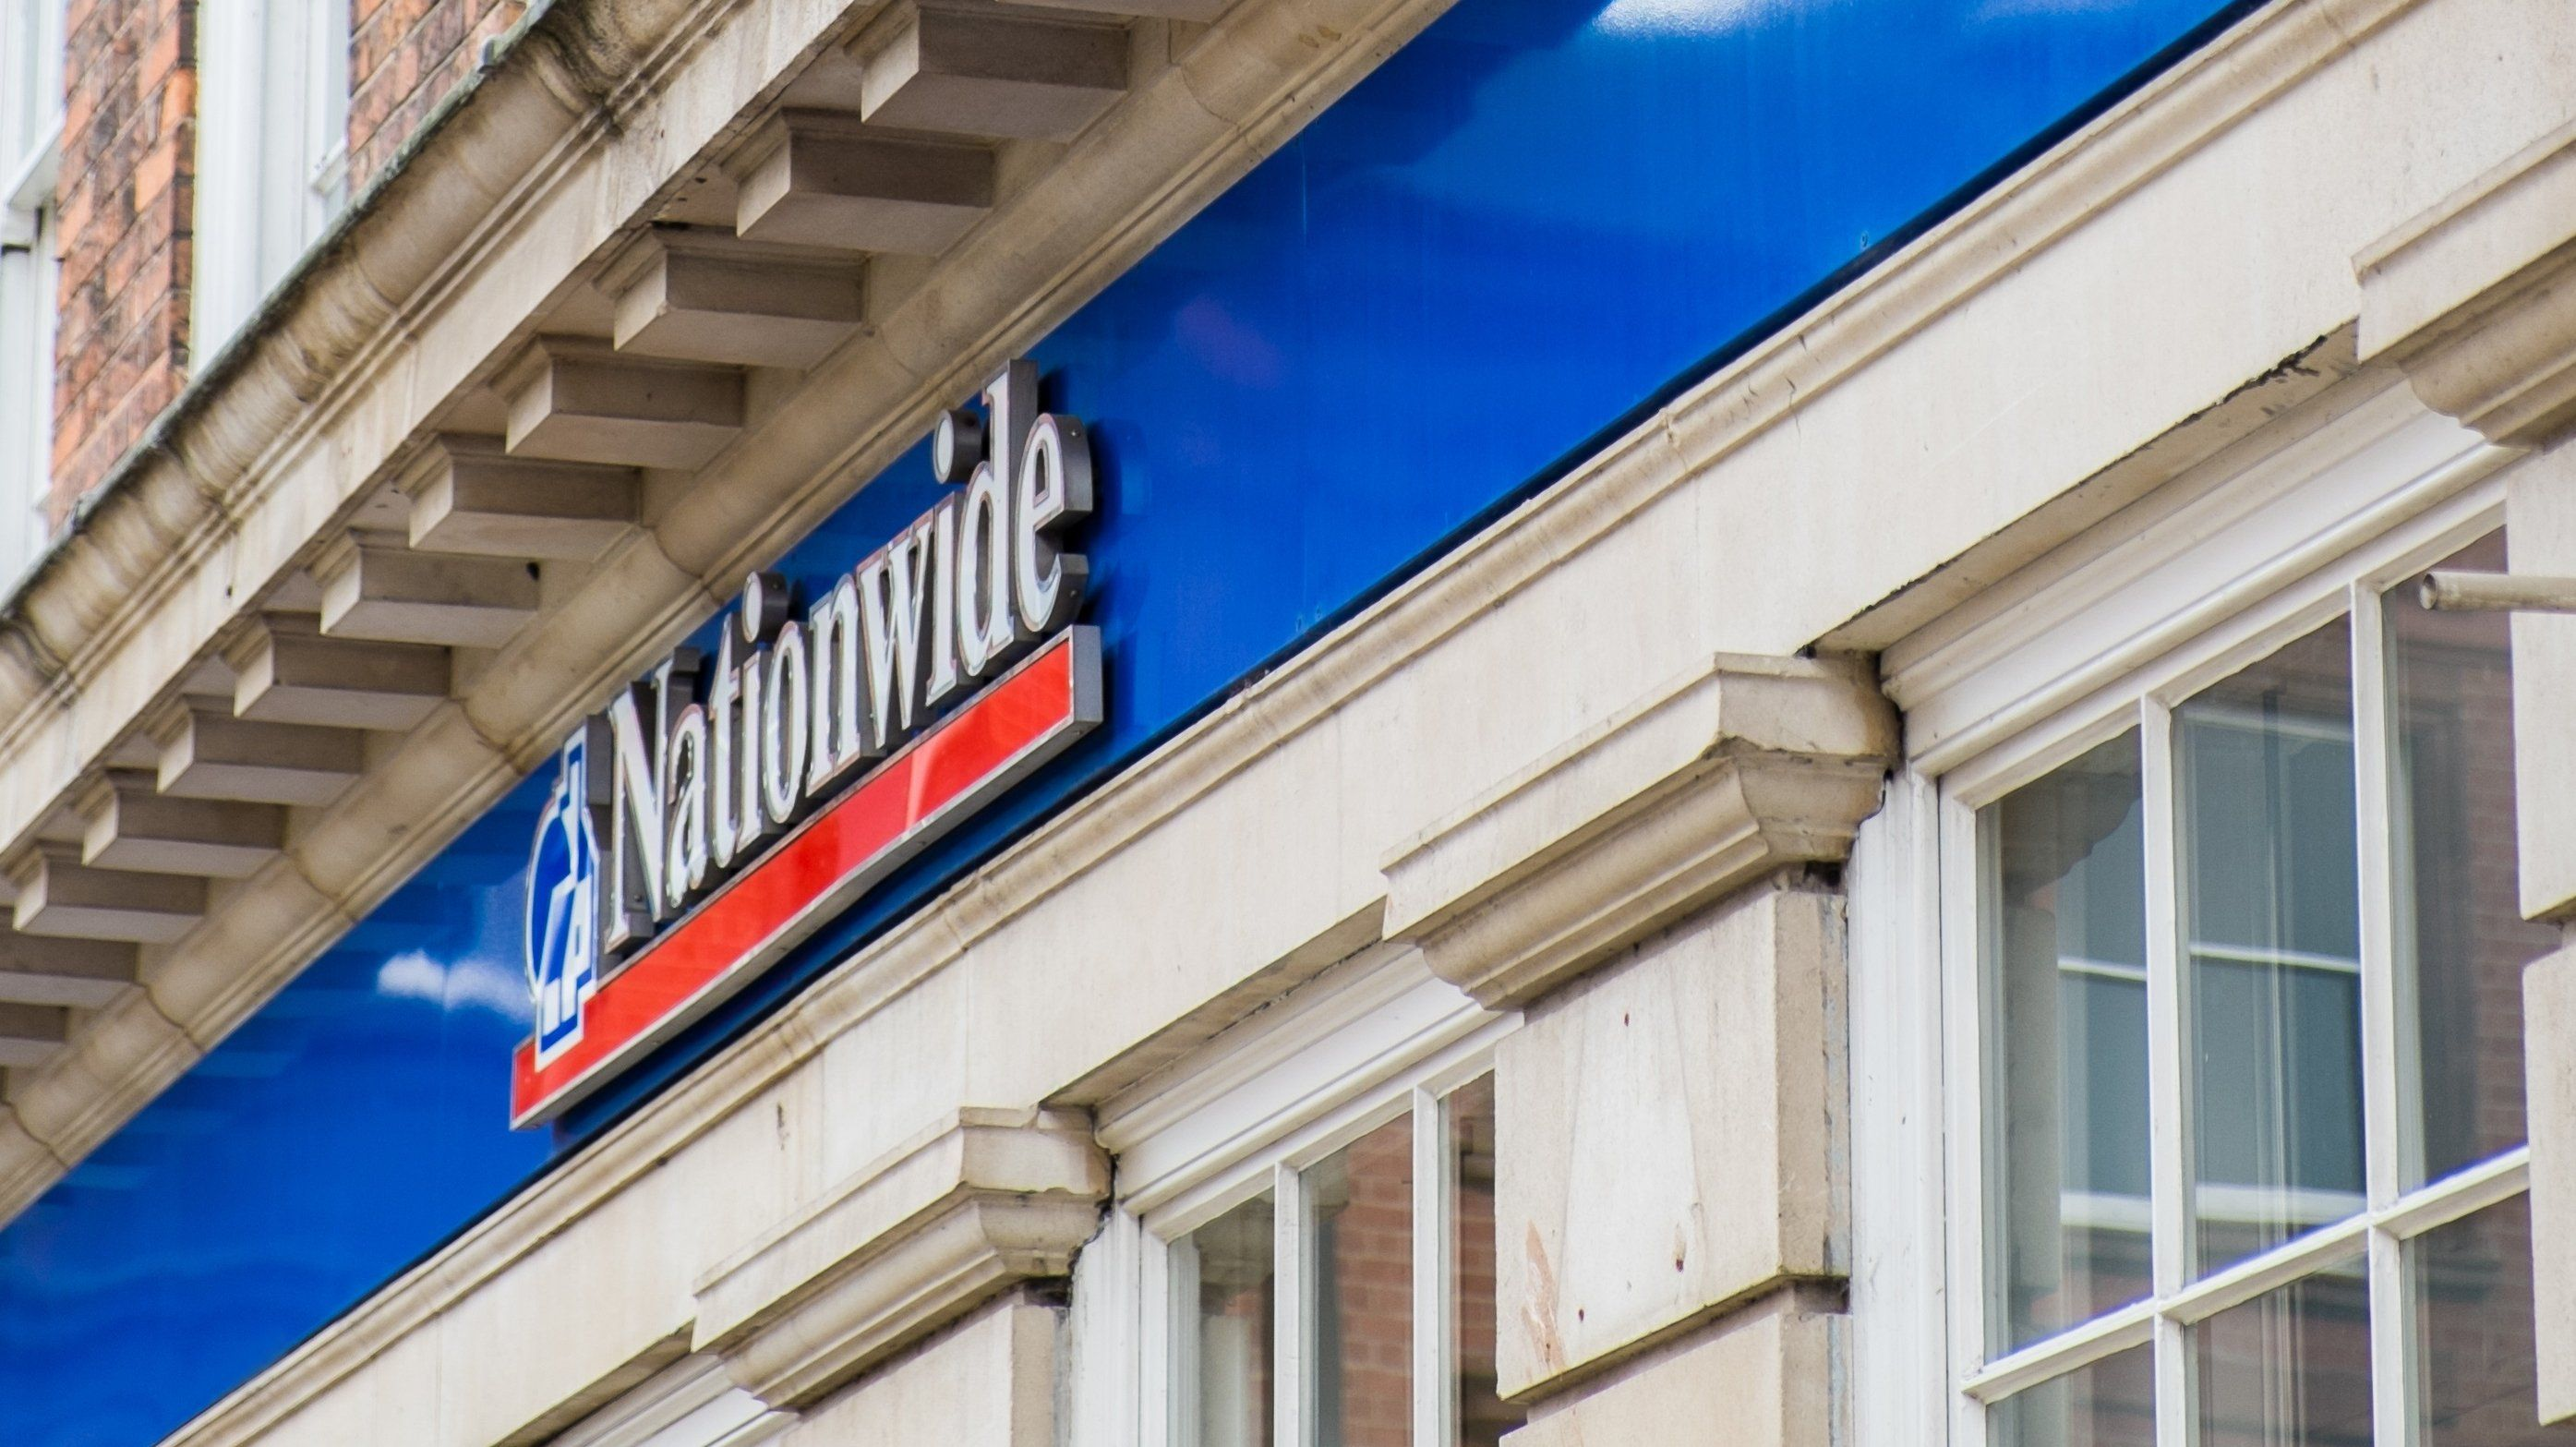 Nationwide Flexplus Is Our Long Standing Top Pick Packaged Bank Account Offering Travel And Mobile Phone Insurance Fluid In Lungs Travel Insurance Nationwide